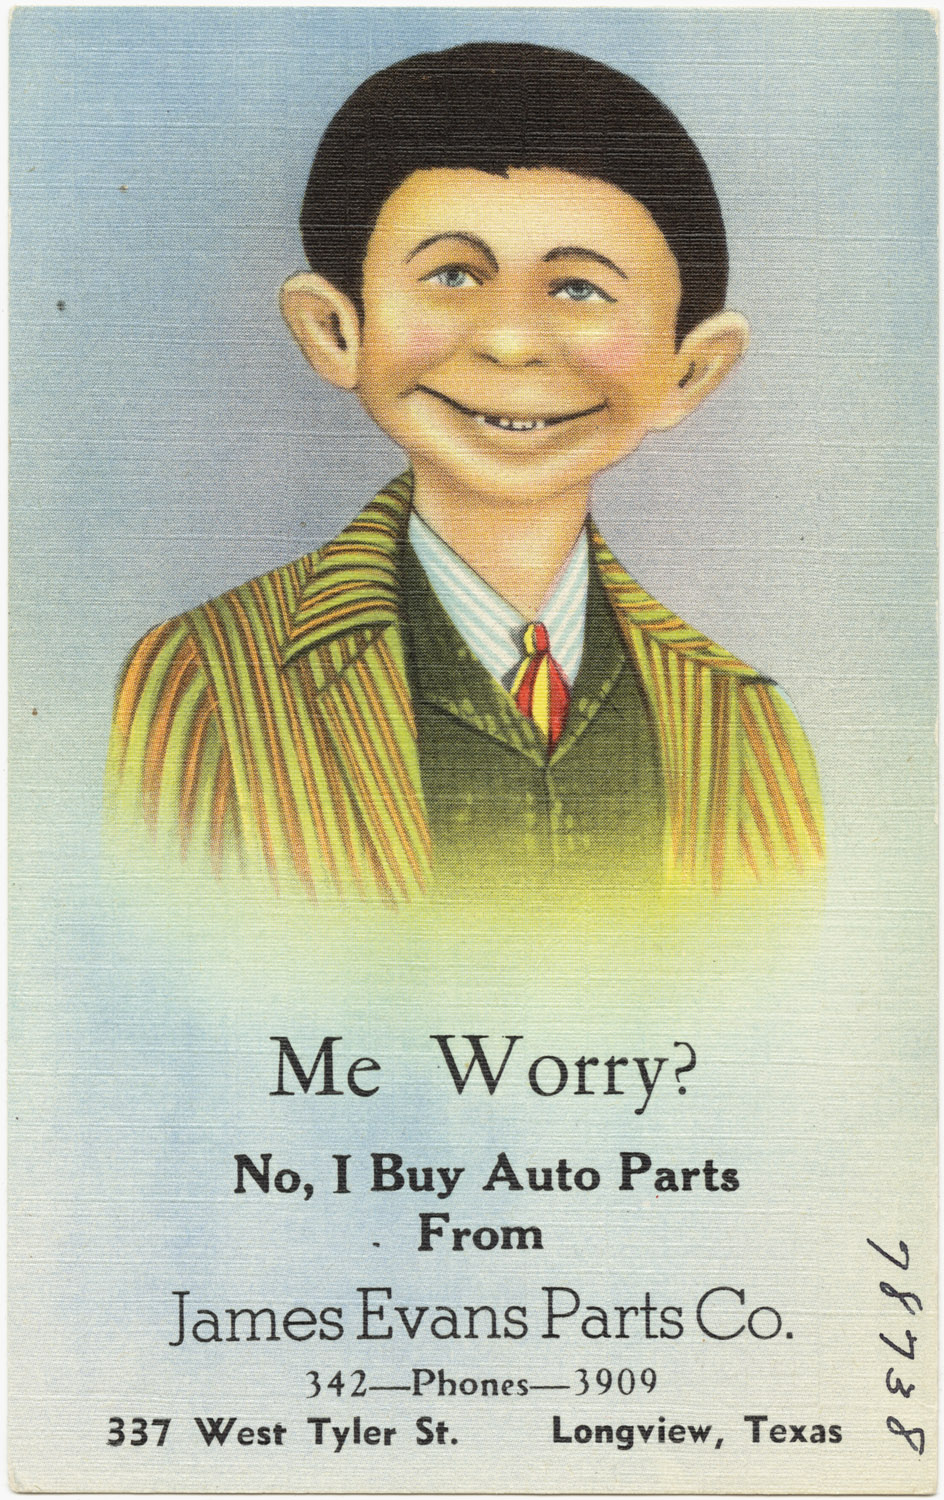 Me_worry-_No,_I_buy_auto_parts_from_James_Evans_Parts_Co.,_337_West_Tyler_St.,_Longview,_Texa